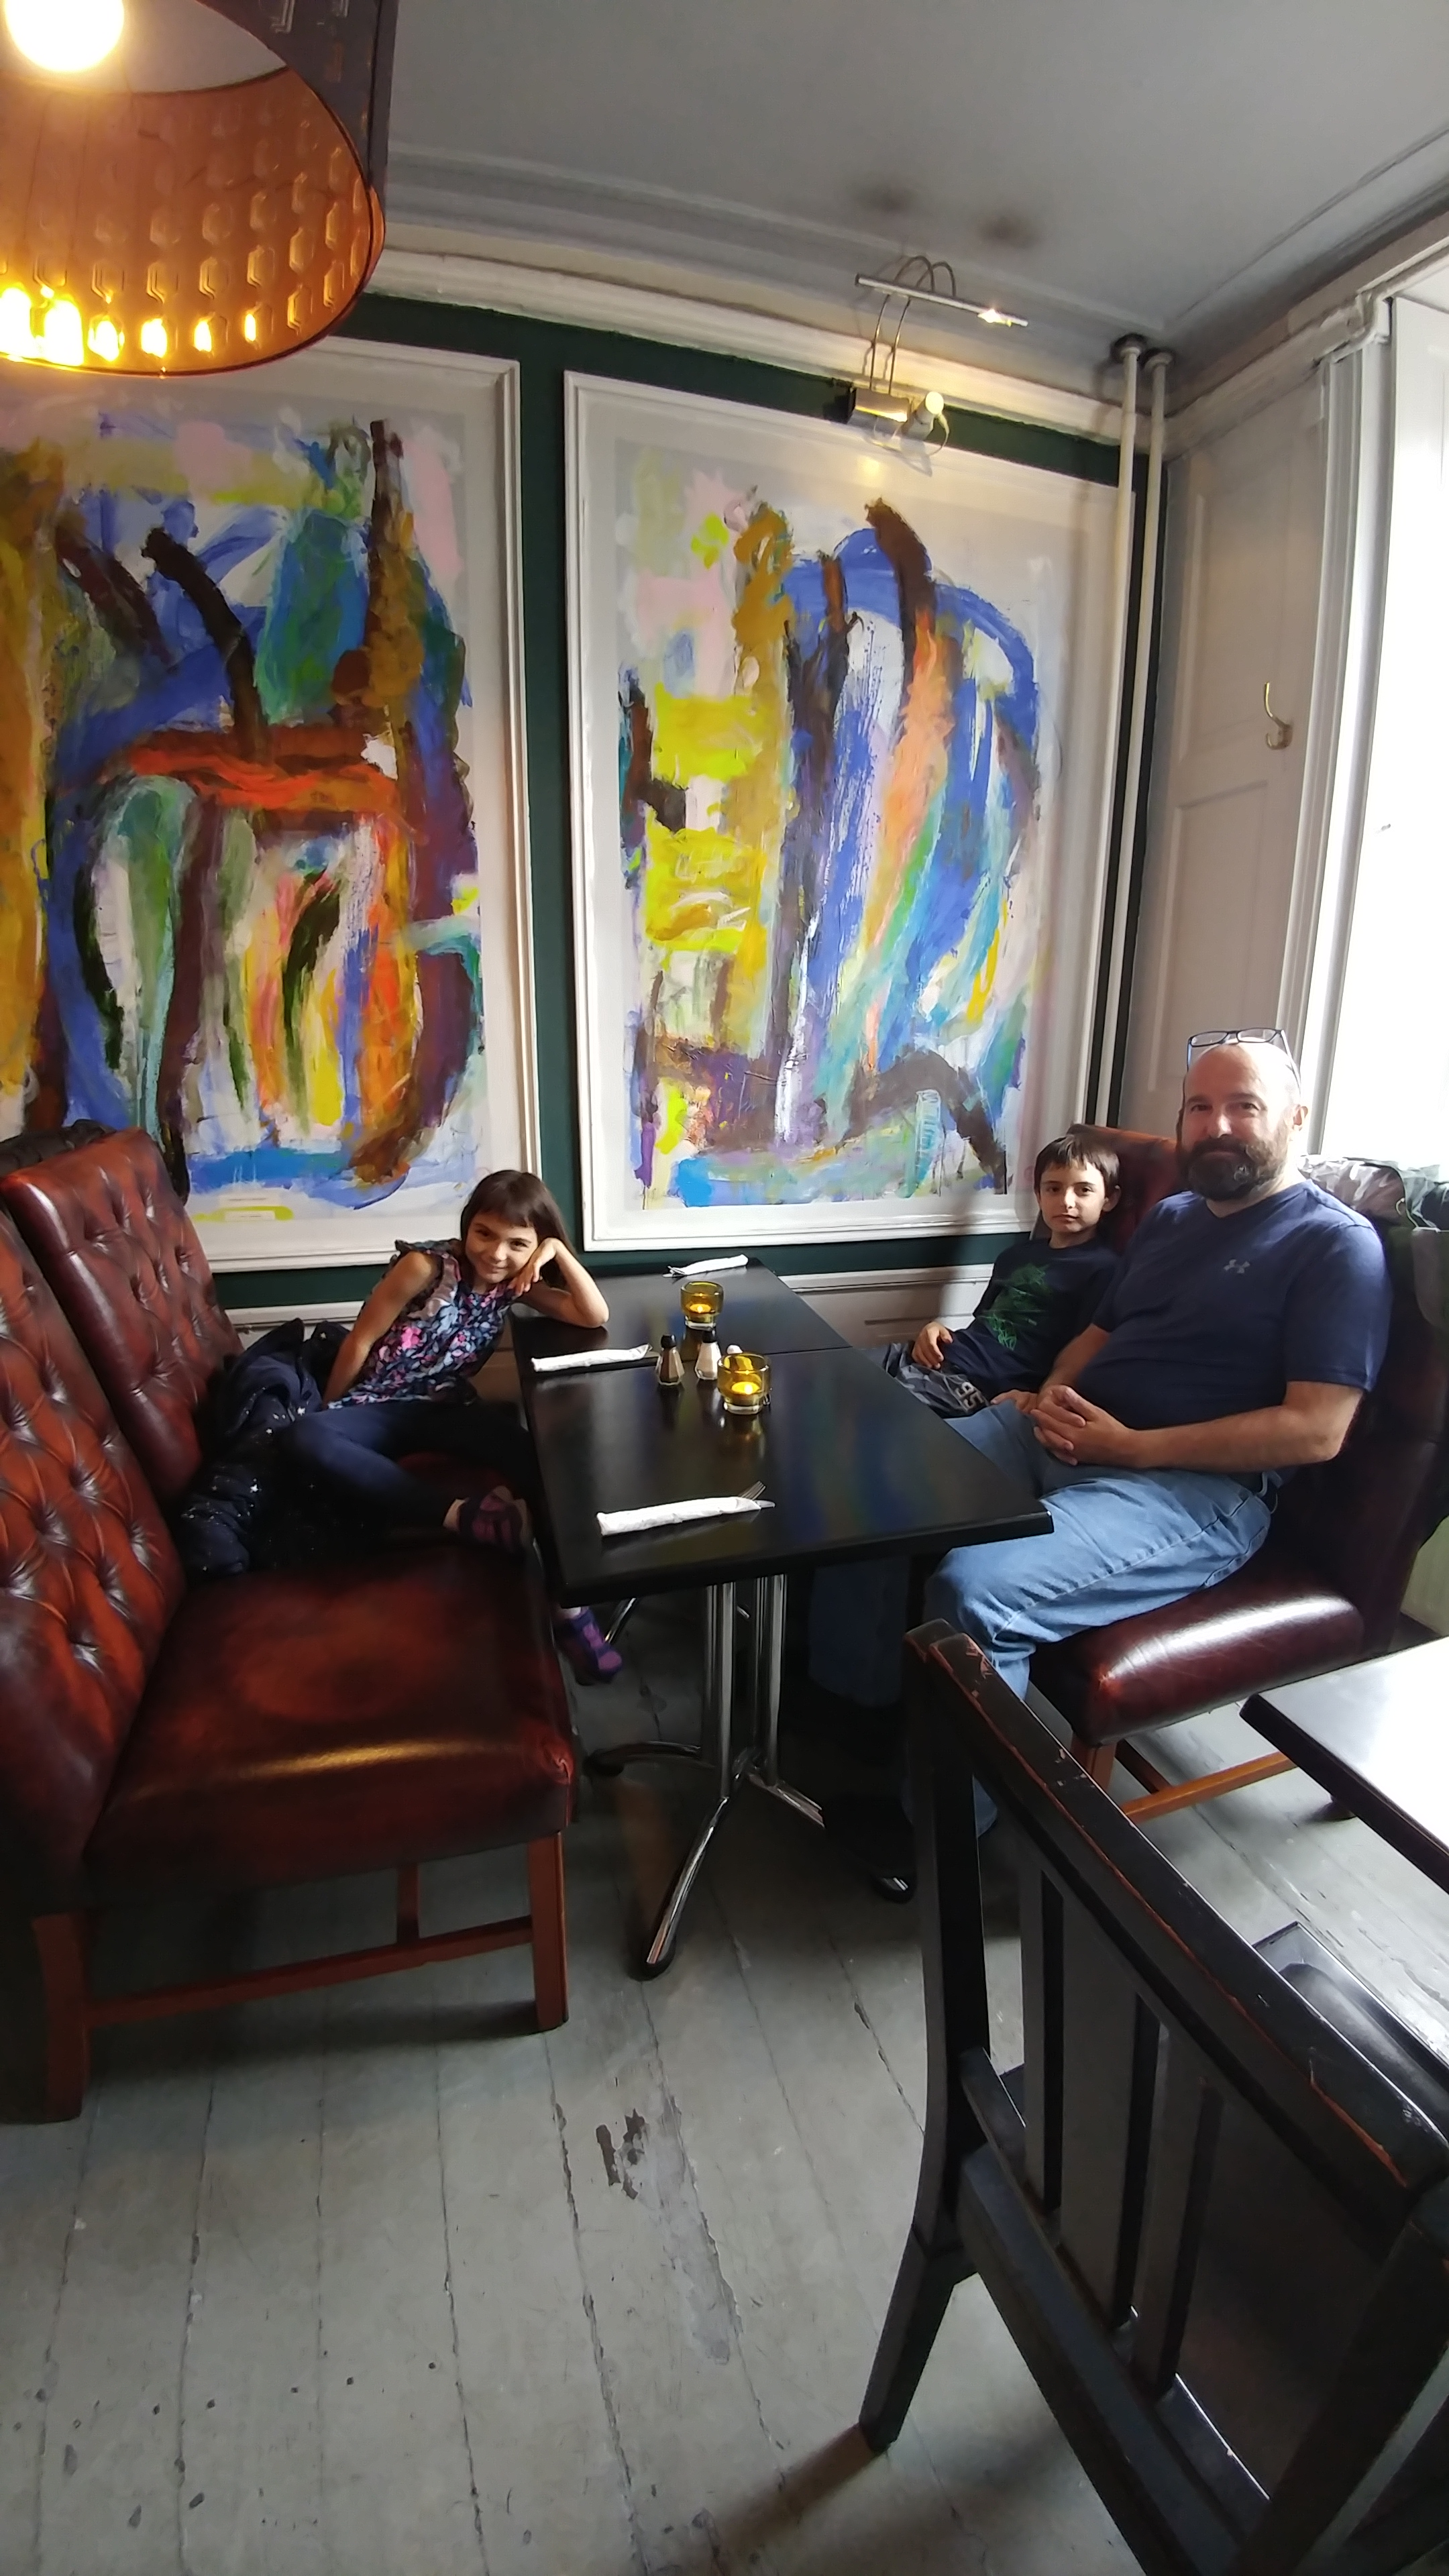 Father and children in restaurant